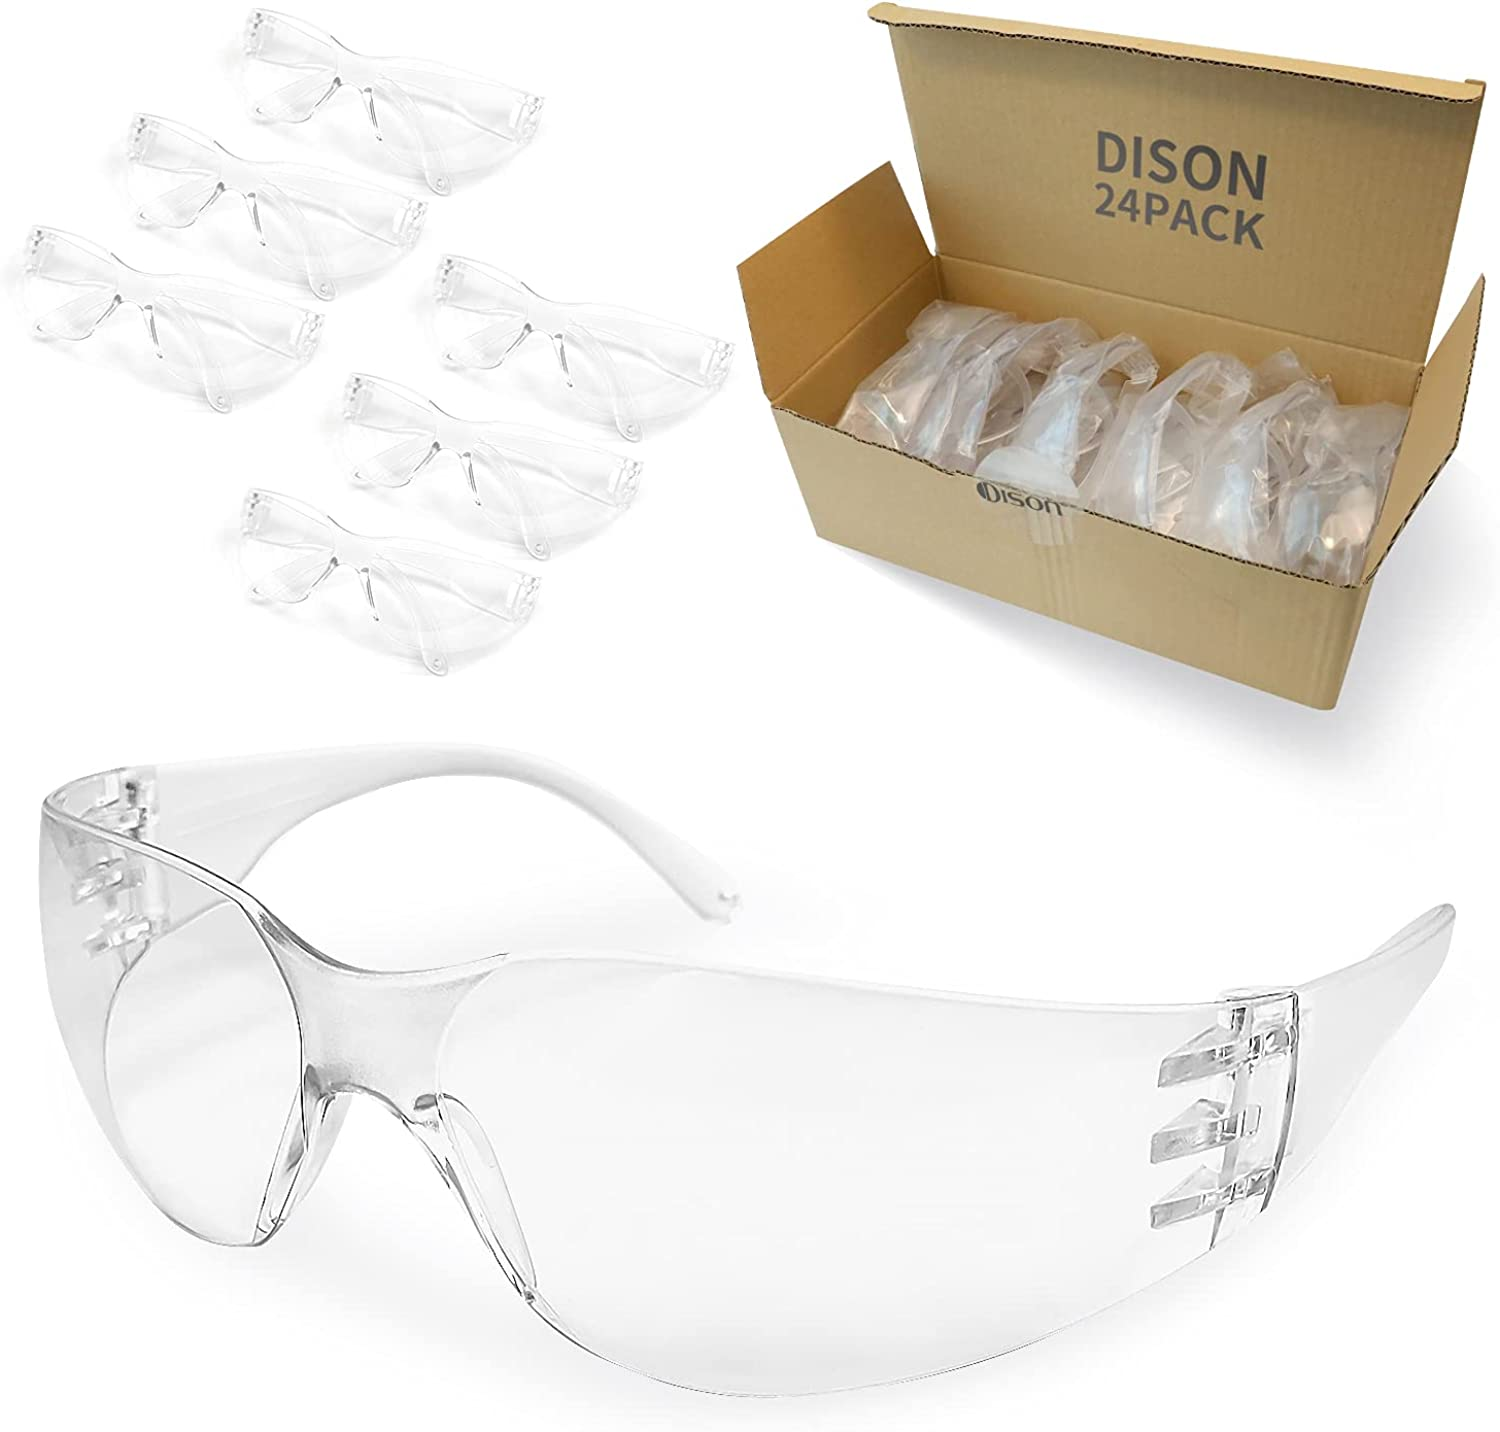 DISON Safety Max 41% OFF Glasses 24Pack Manufacturer direct delivery Eyewear Protection Protective Eye